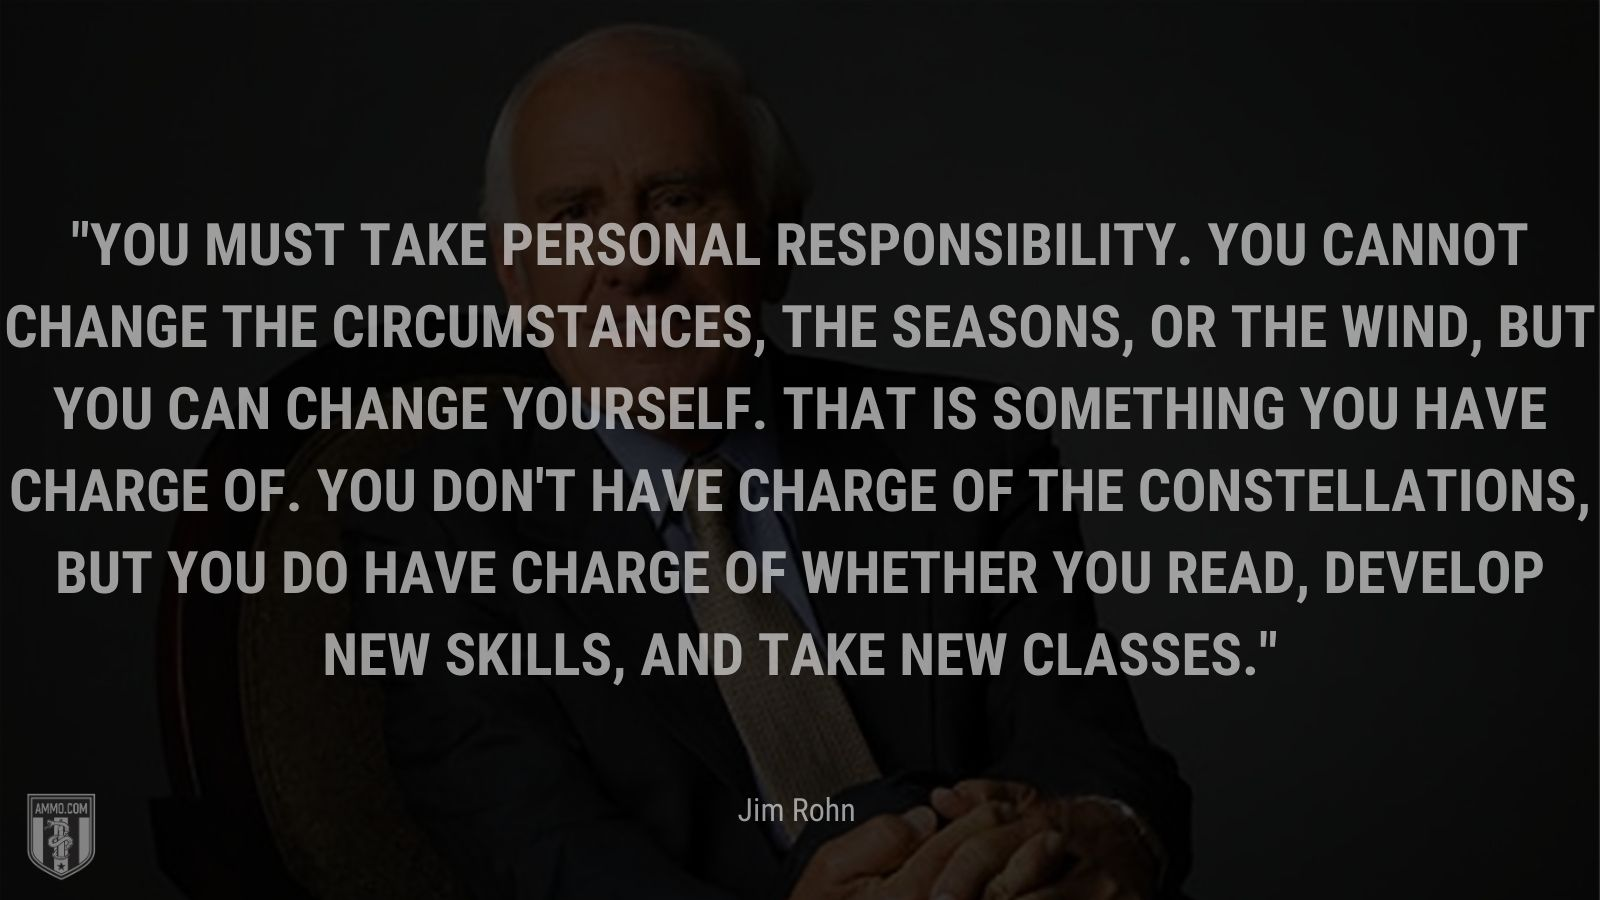 """""""You must take personal responsibility.  You cannot change the circumstances, the seasons, or the wind, but you can change yourself.  That is something you have charge of.  You don't have charge of the constellations, but you do have charge of whether you read, develop new skills, and take new classes. - Jim Rohn"""